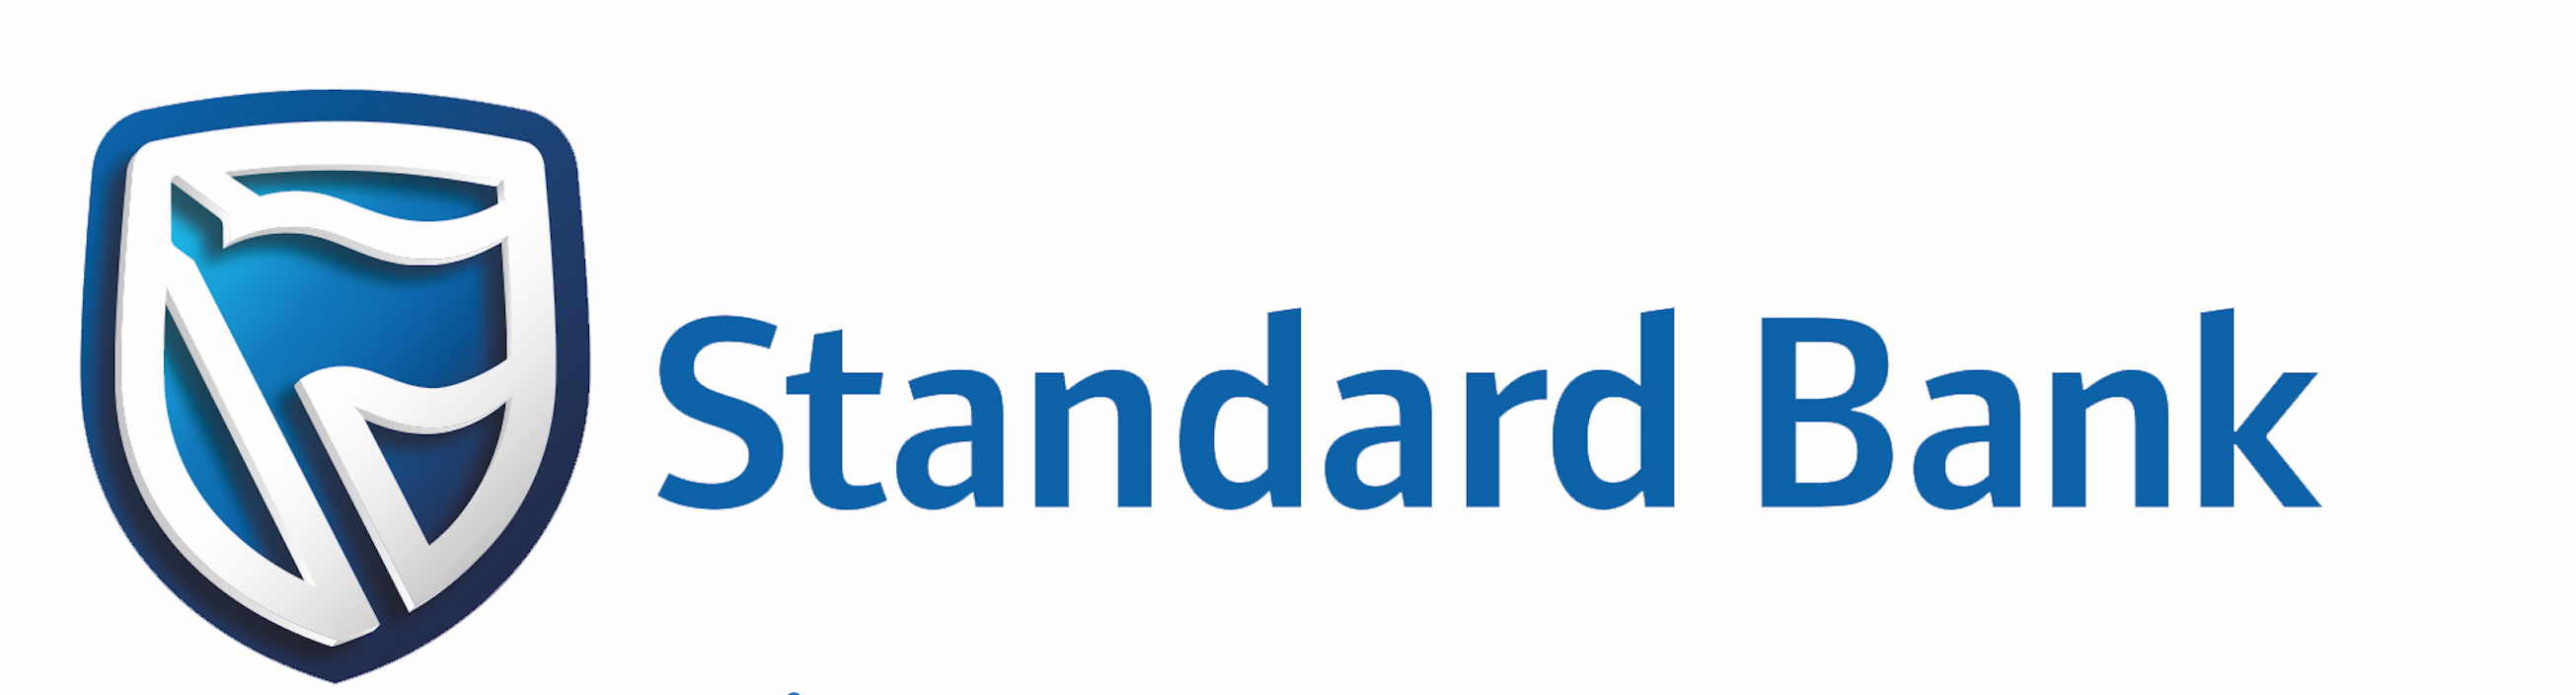 Standard Bank logo - Movemeback African initiative